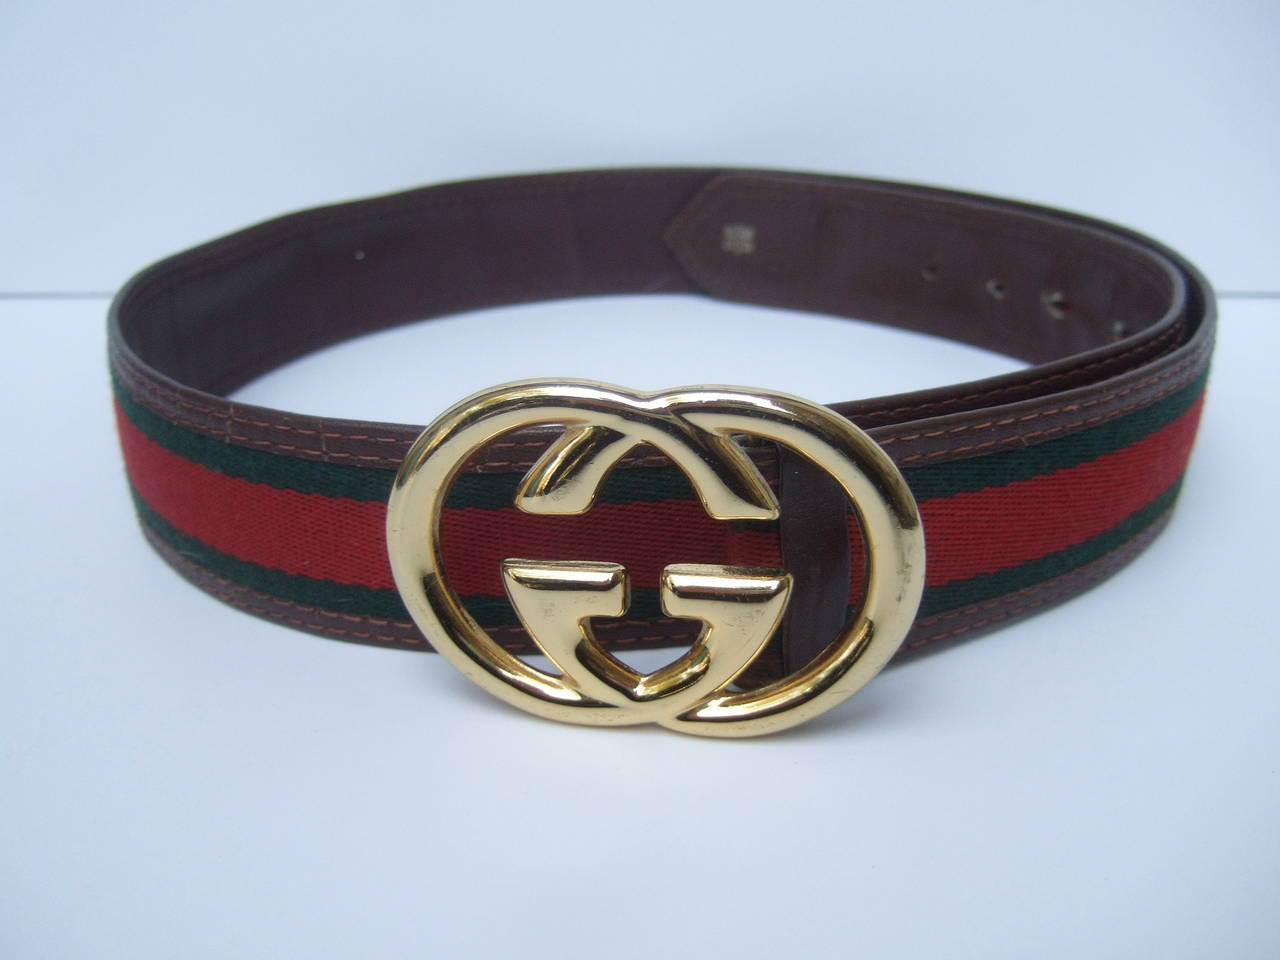 Gucci Sleek Gilt Buckle Red and Green Striped Belt c 1980s ...